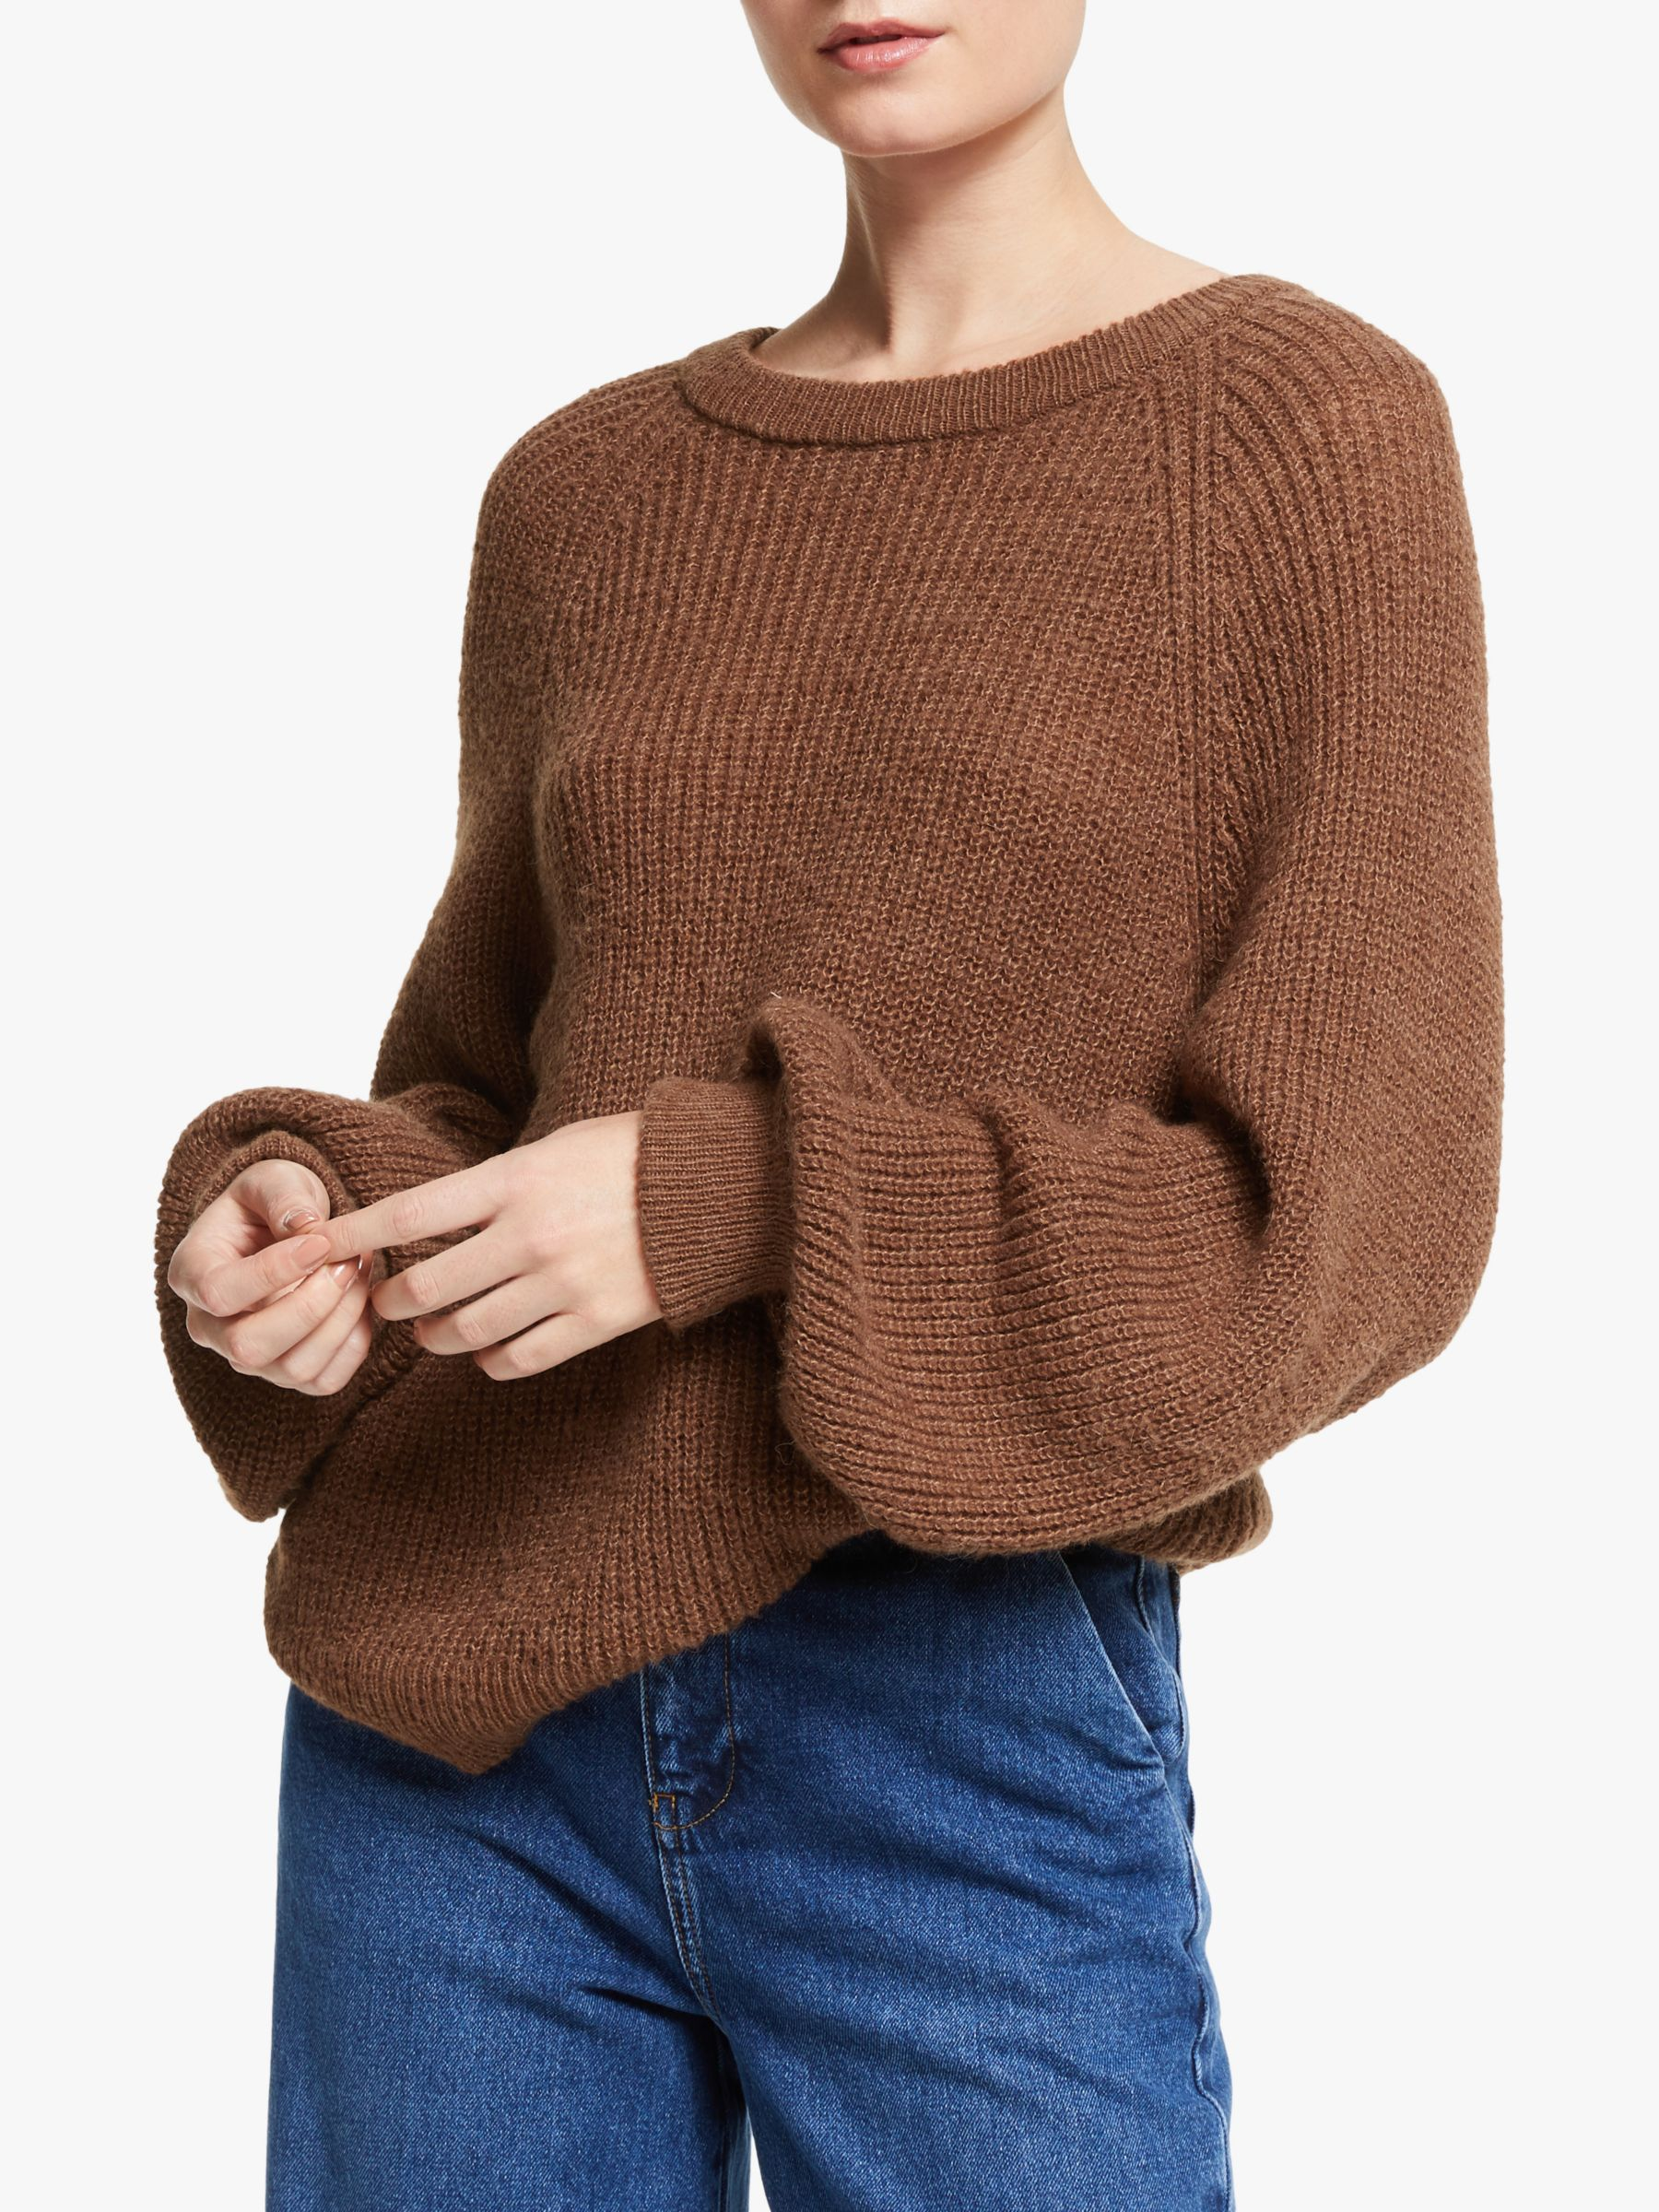 Vero Moda AWARE BY VERO MODA Genius Jumper